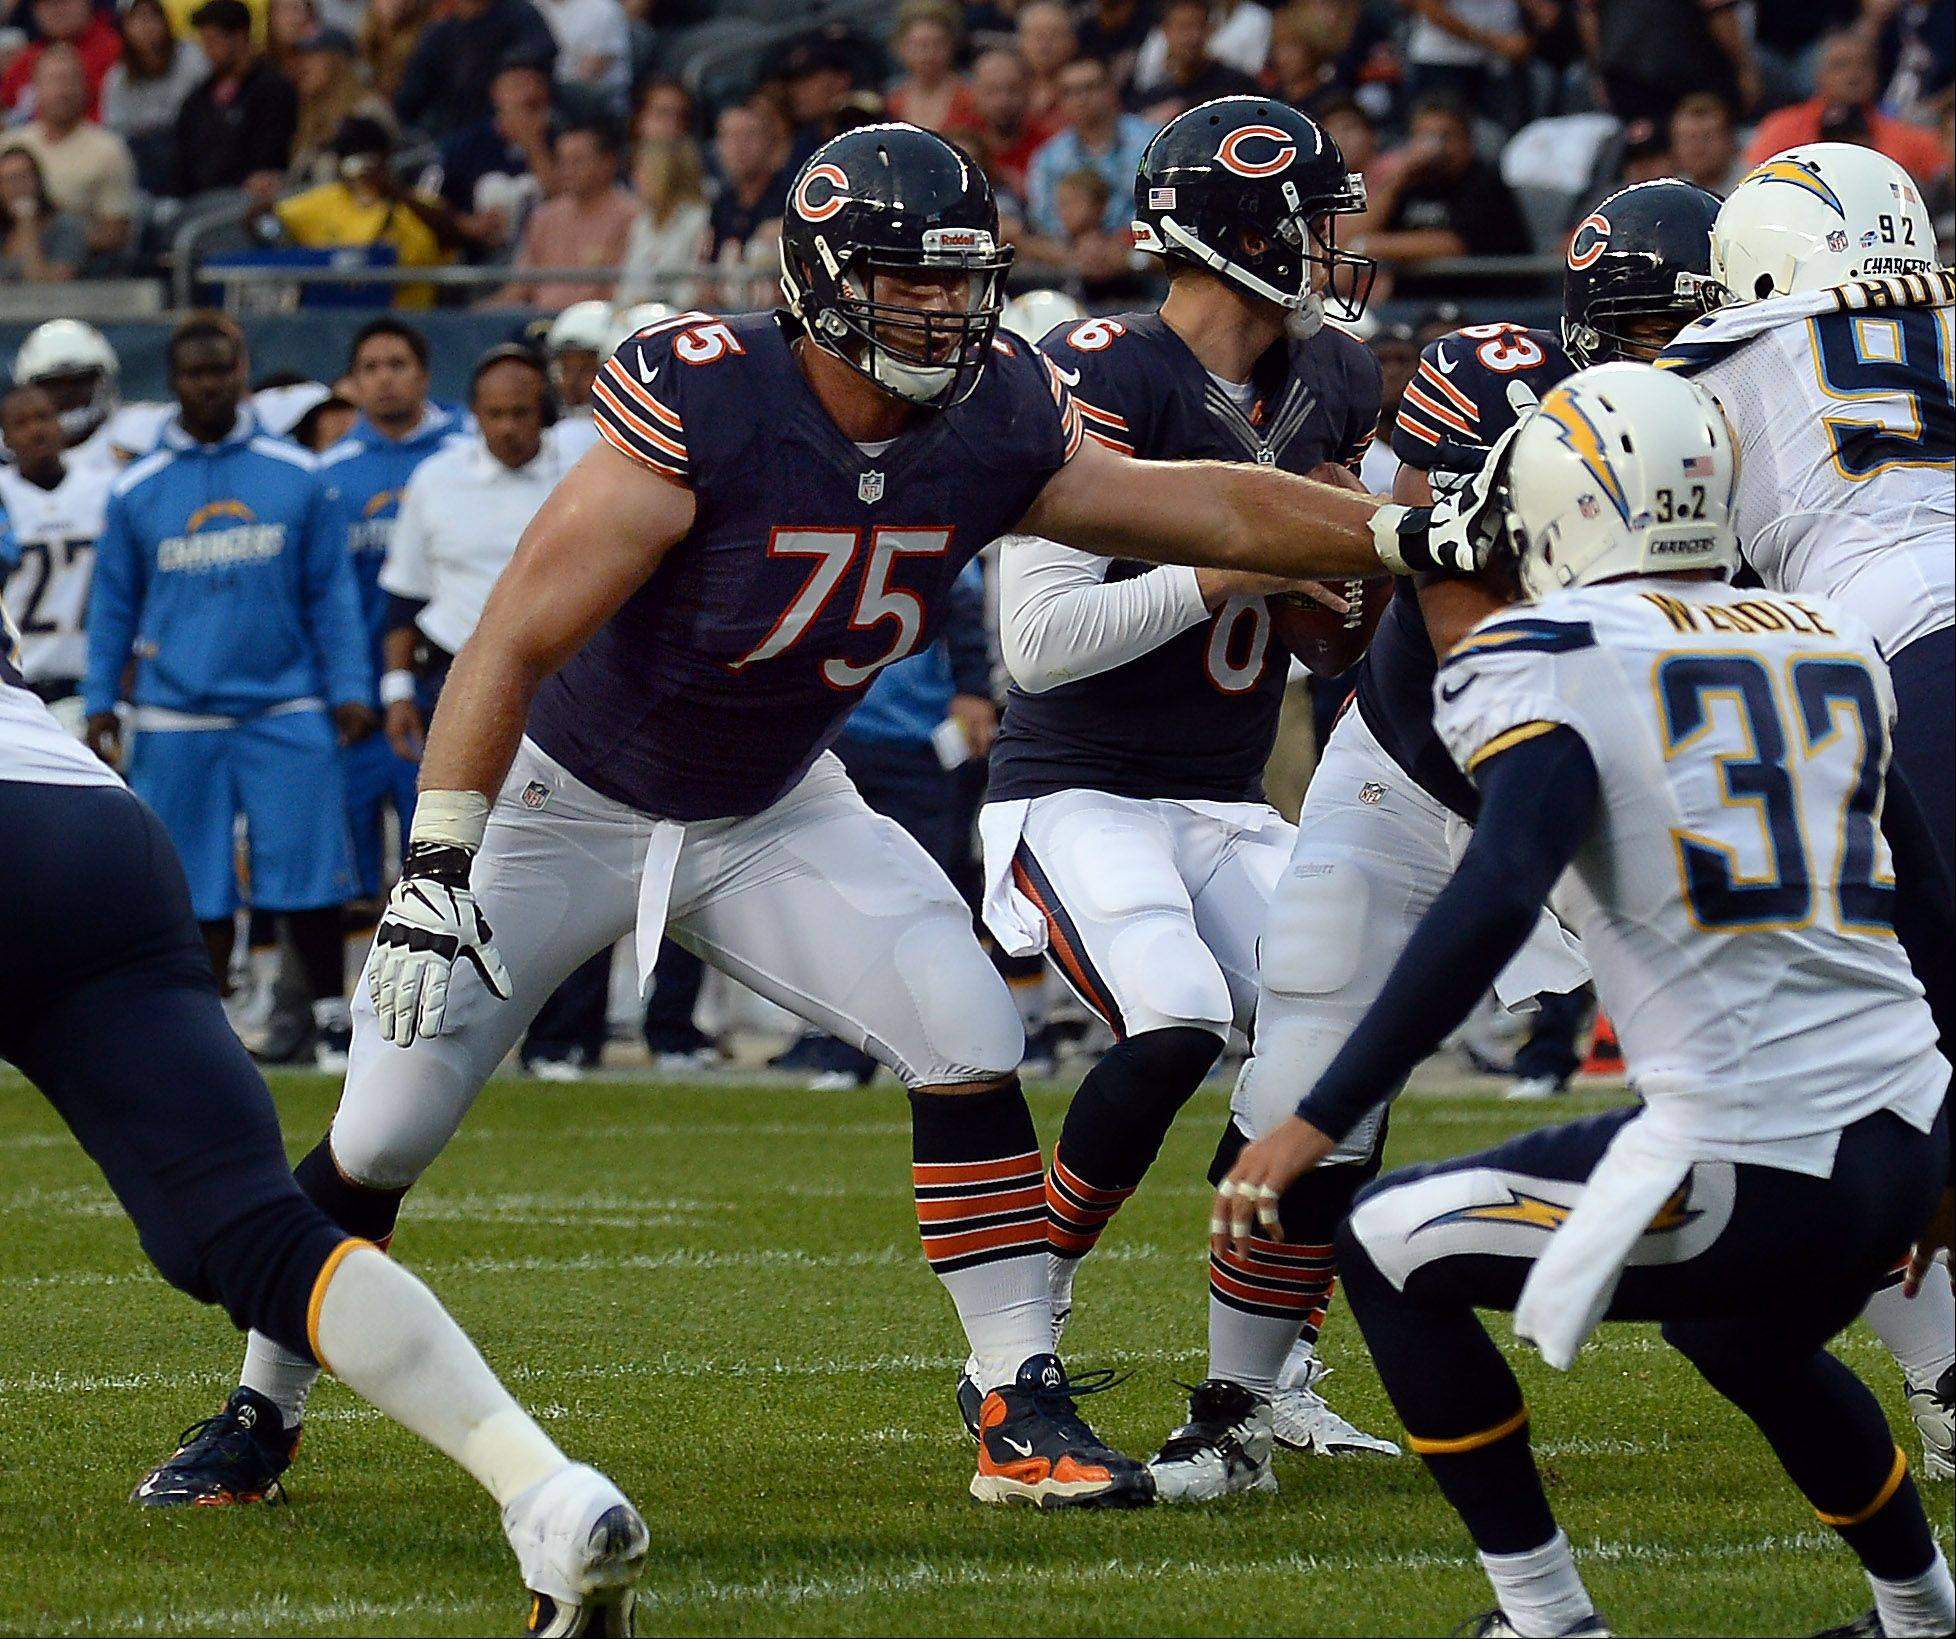 Mark Welsh/mwelsh@dailyherald.com ¬ Chicago Bears Kyle Long protects quarterback Jay Cutler as the Chargers defense rushes in the preseason matchup at Soldier Field. ¬